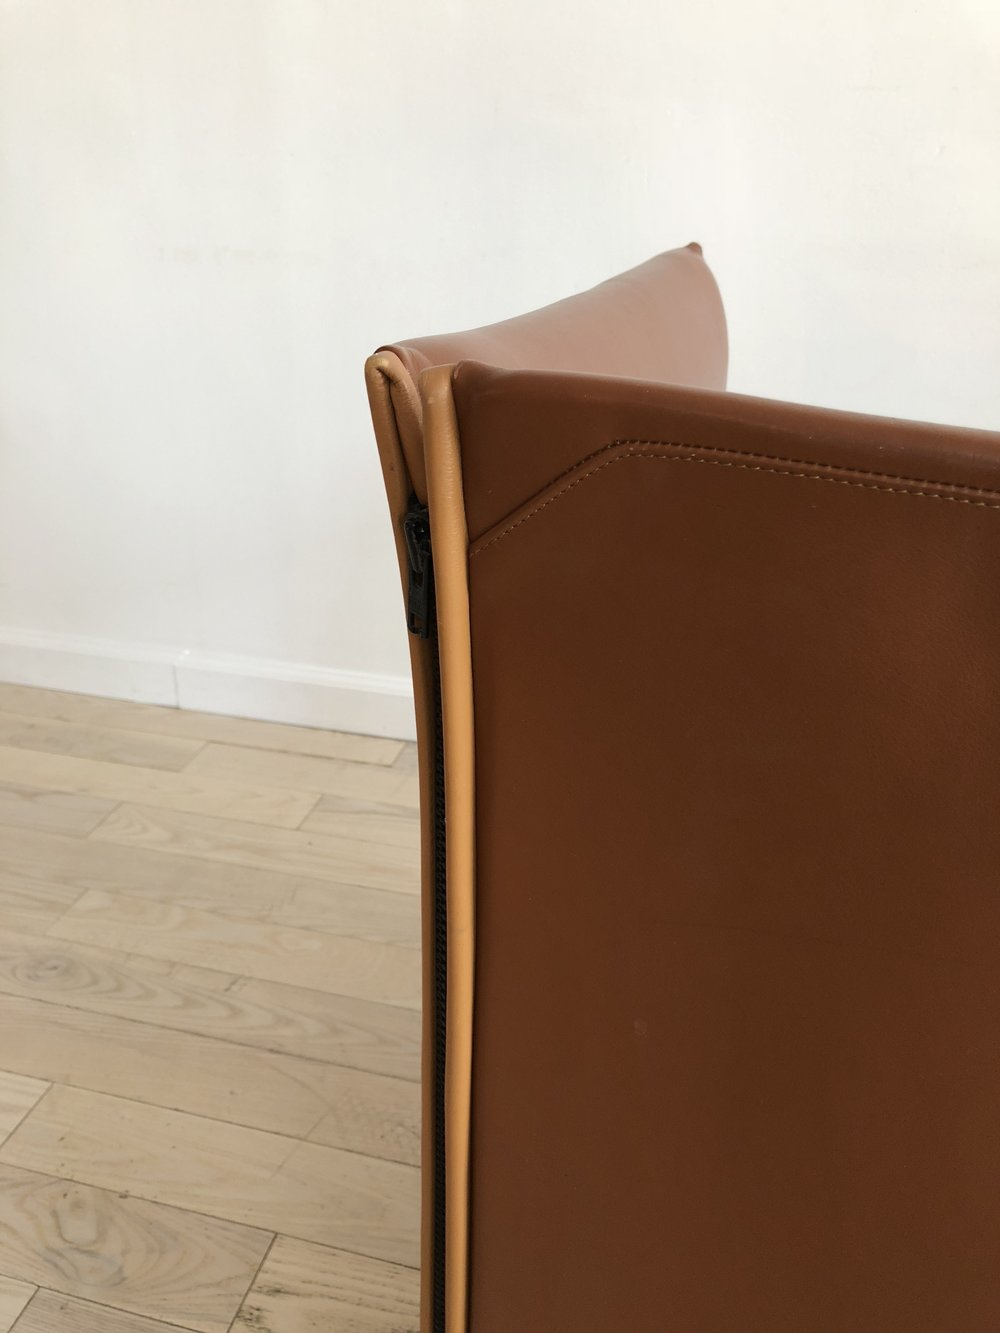 1976 Italian Leather Mario Bellini for Cassina Chair